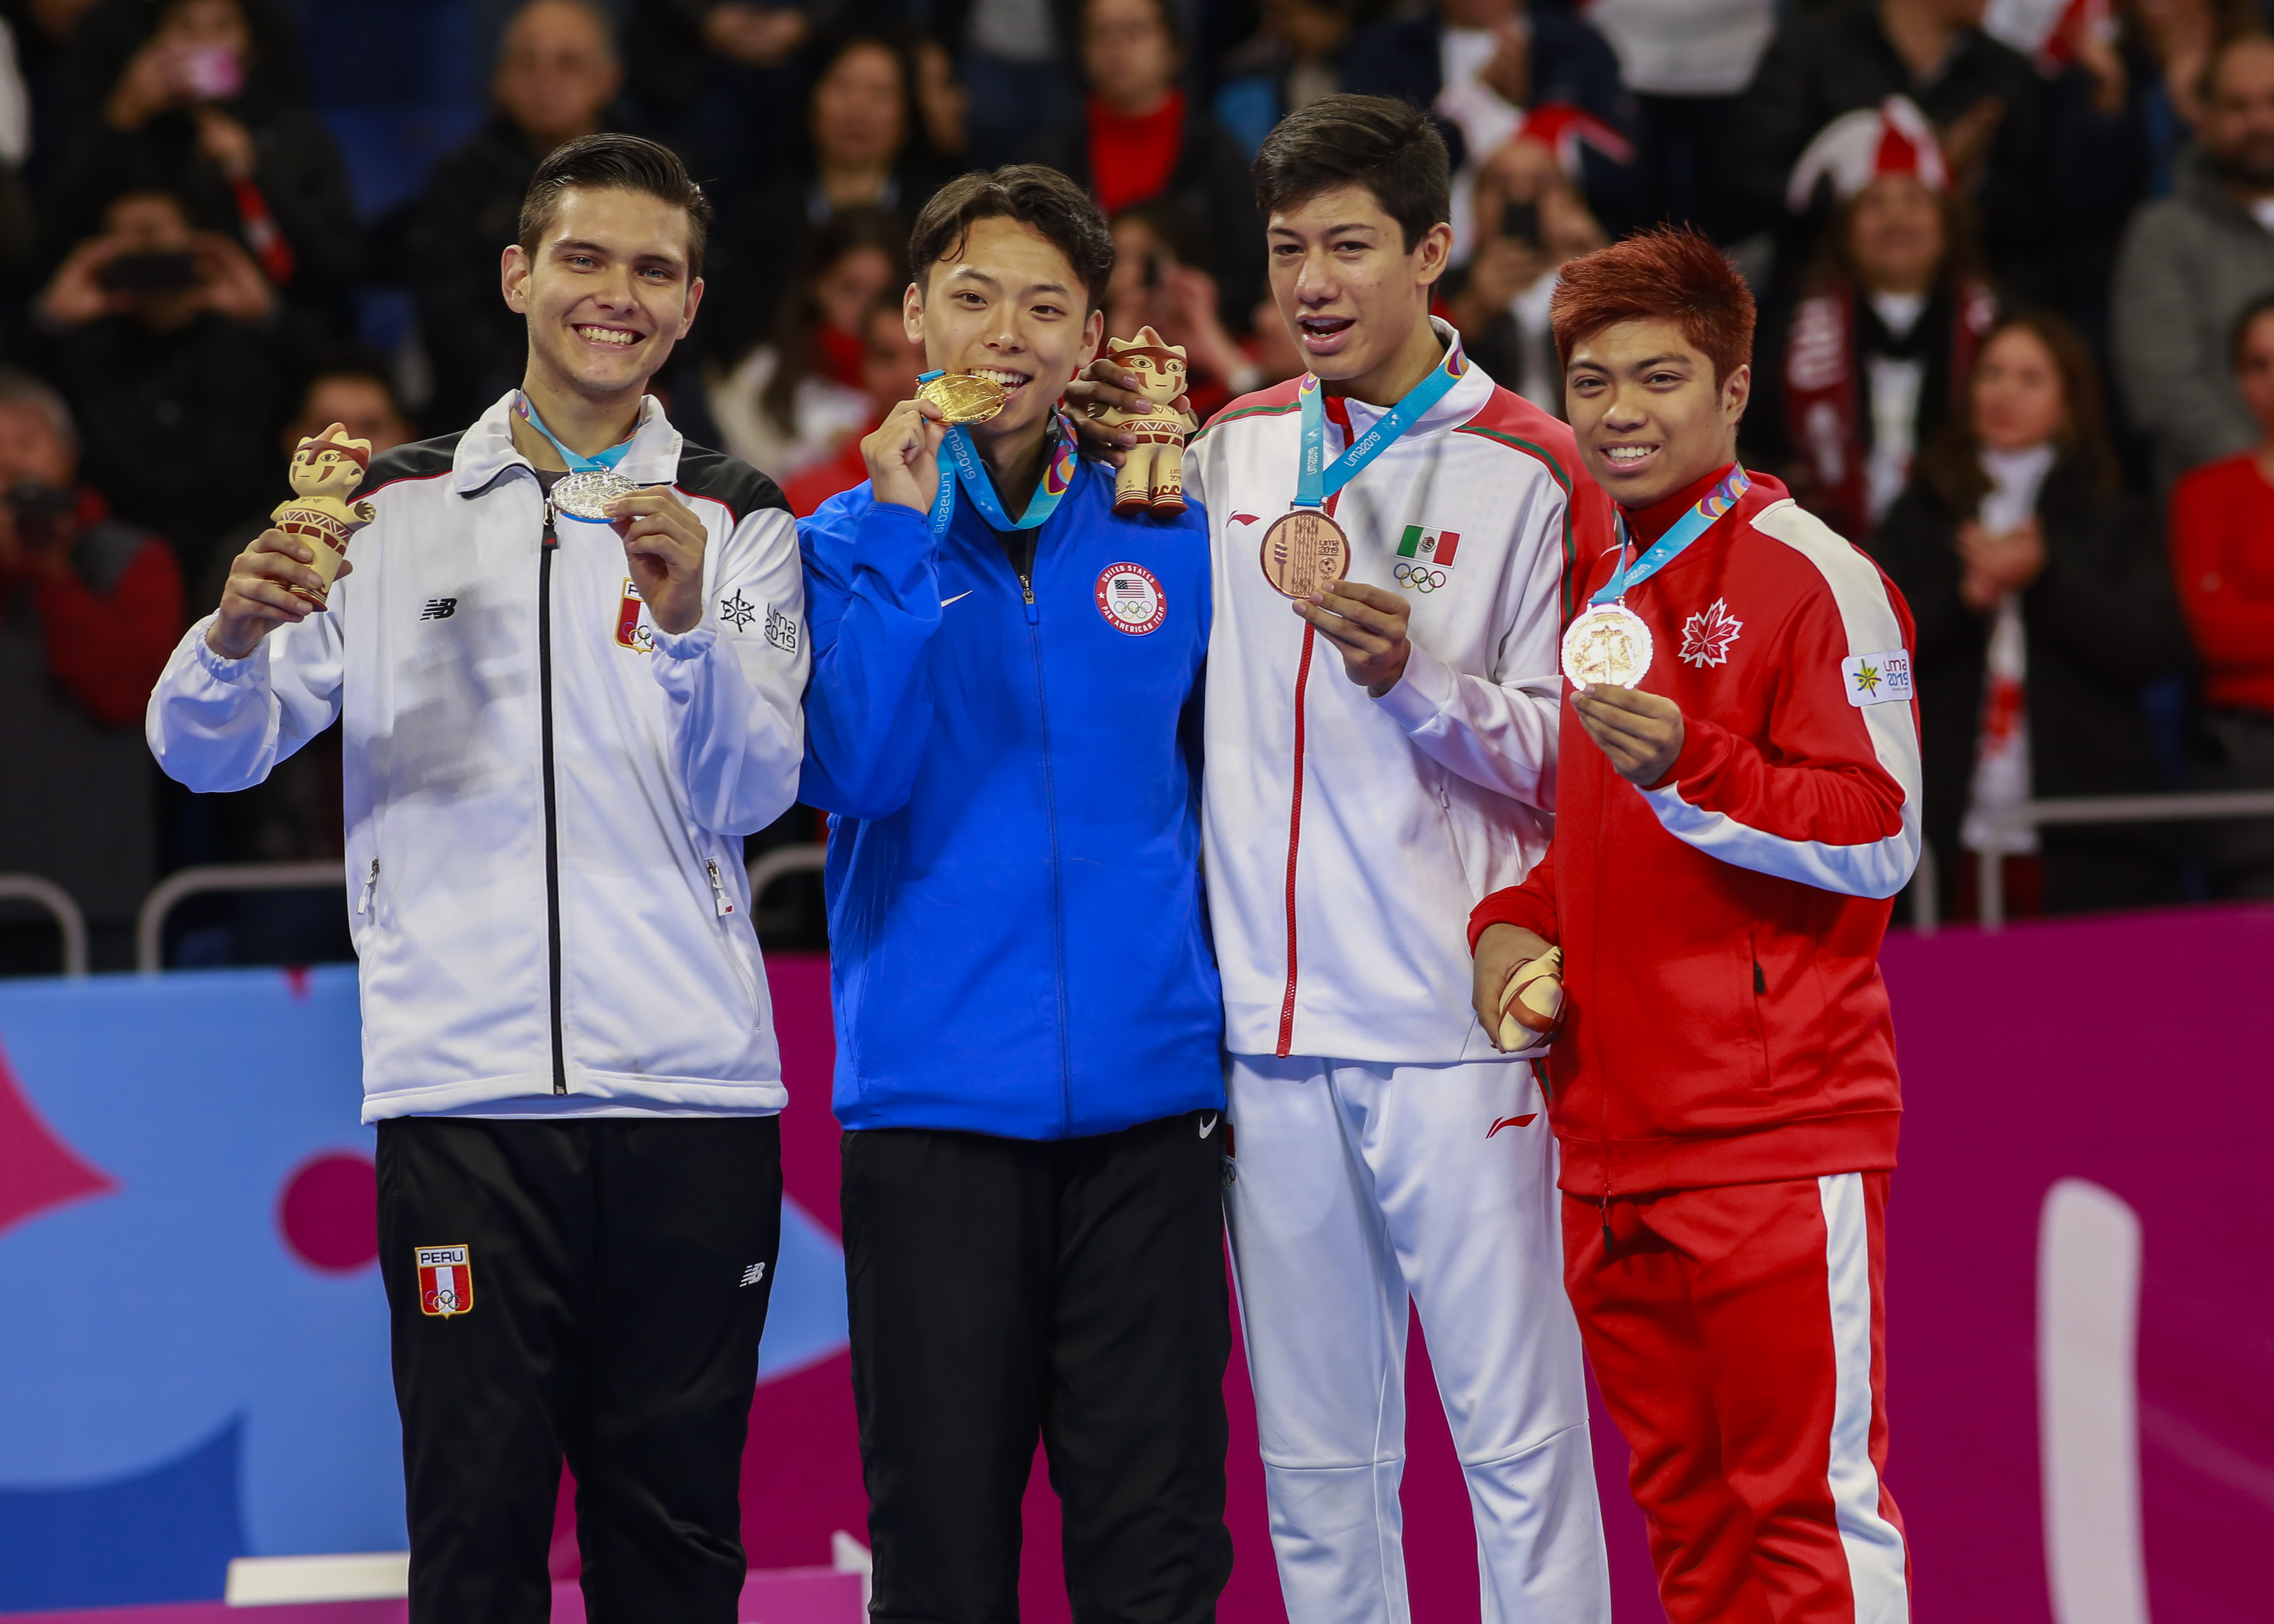 Hugo Castillo Peru ,left, holding the silver medal, Alex Lee from USA, the winner of the Taekwondo competition together with Marco Arroyo from Mexico and J. Abbas Assadian from Canada